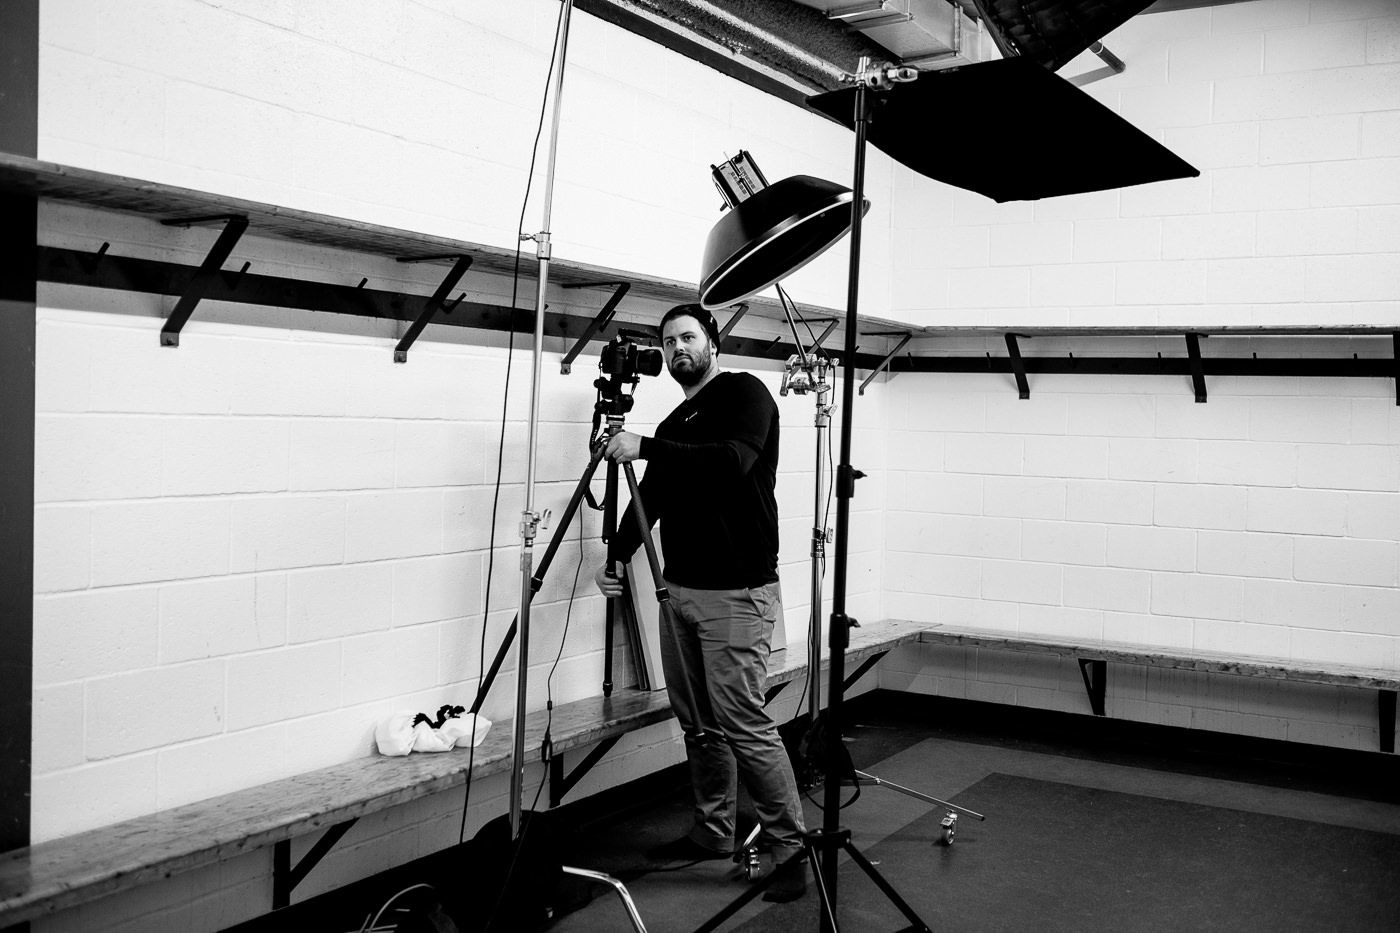 photographie vestiaire hockey arena pour le shooting jeux olympique de sports experts